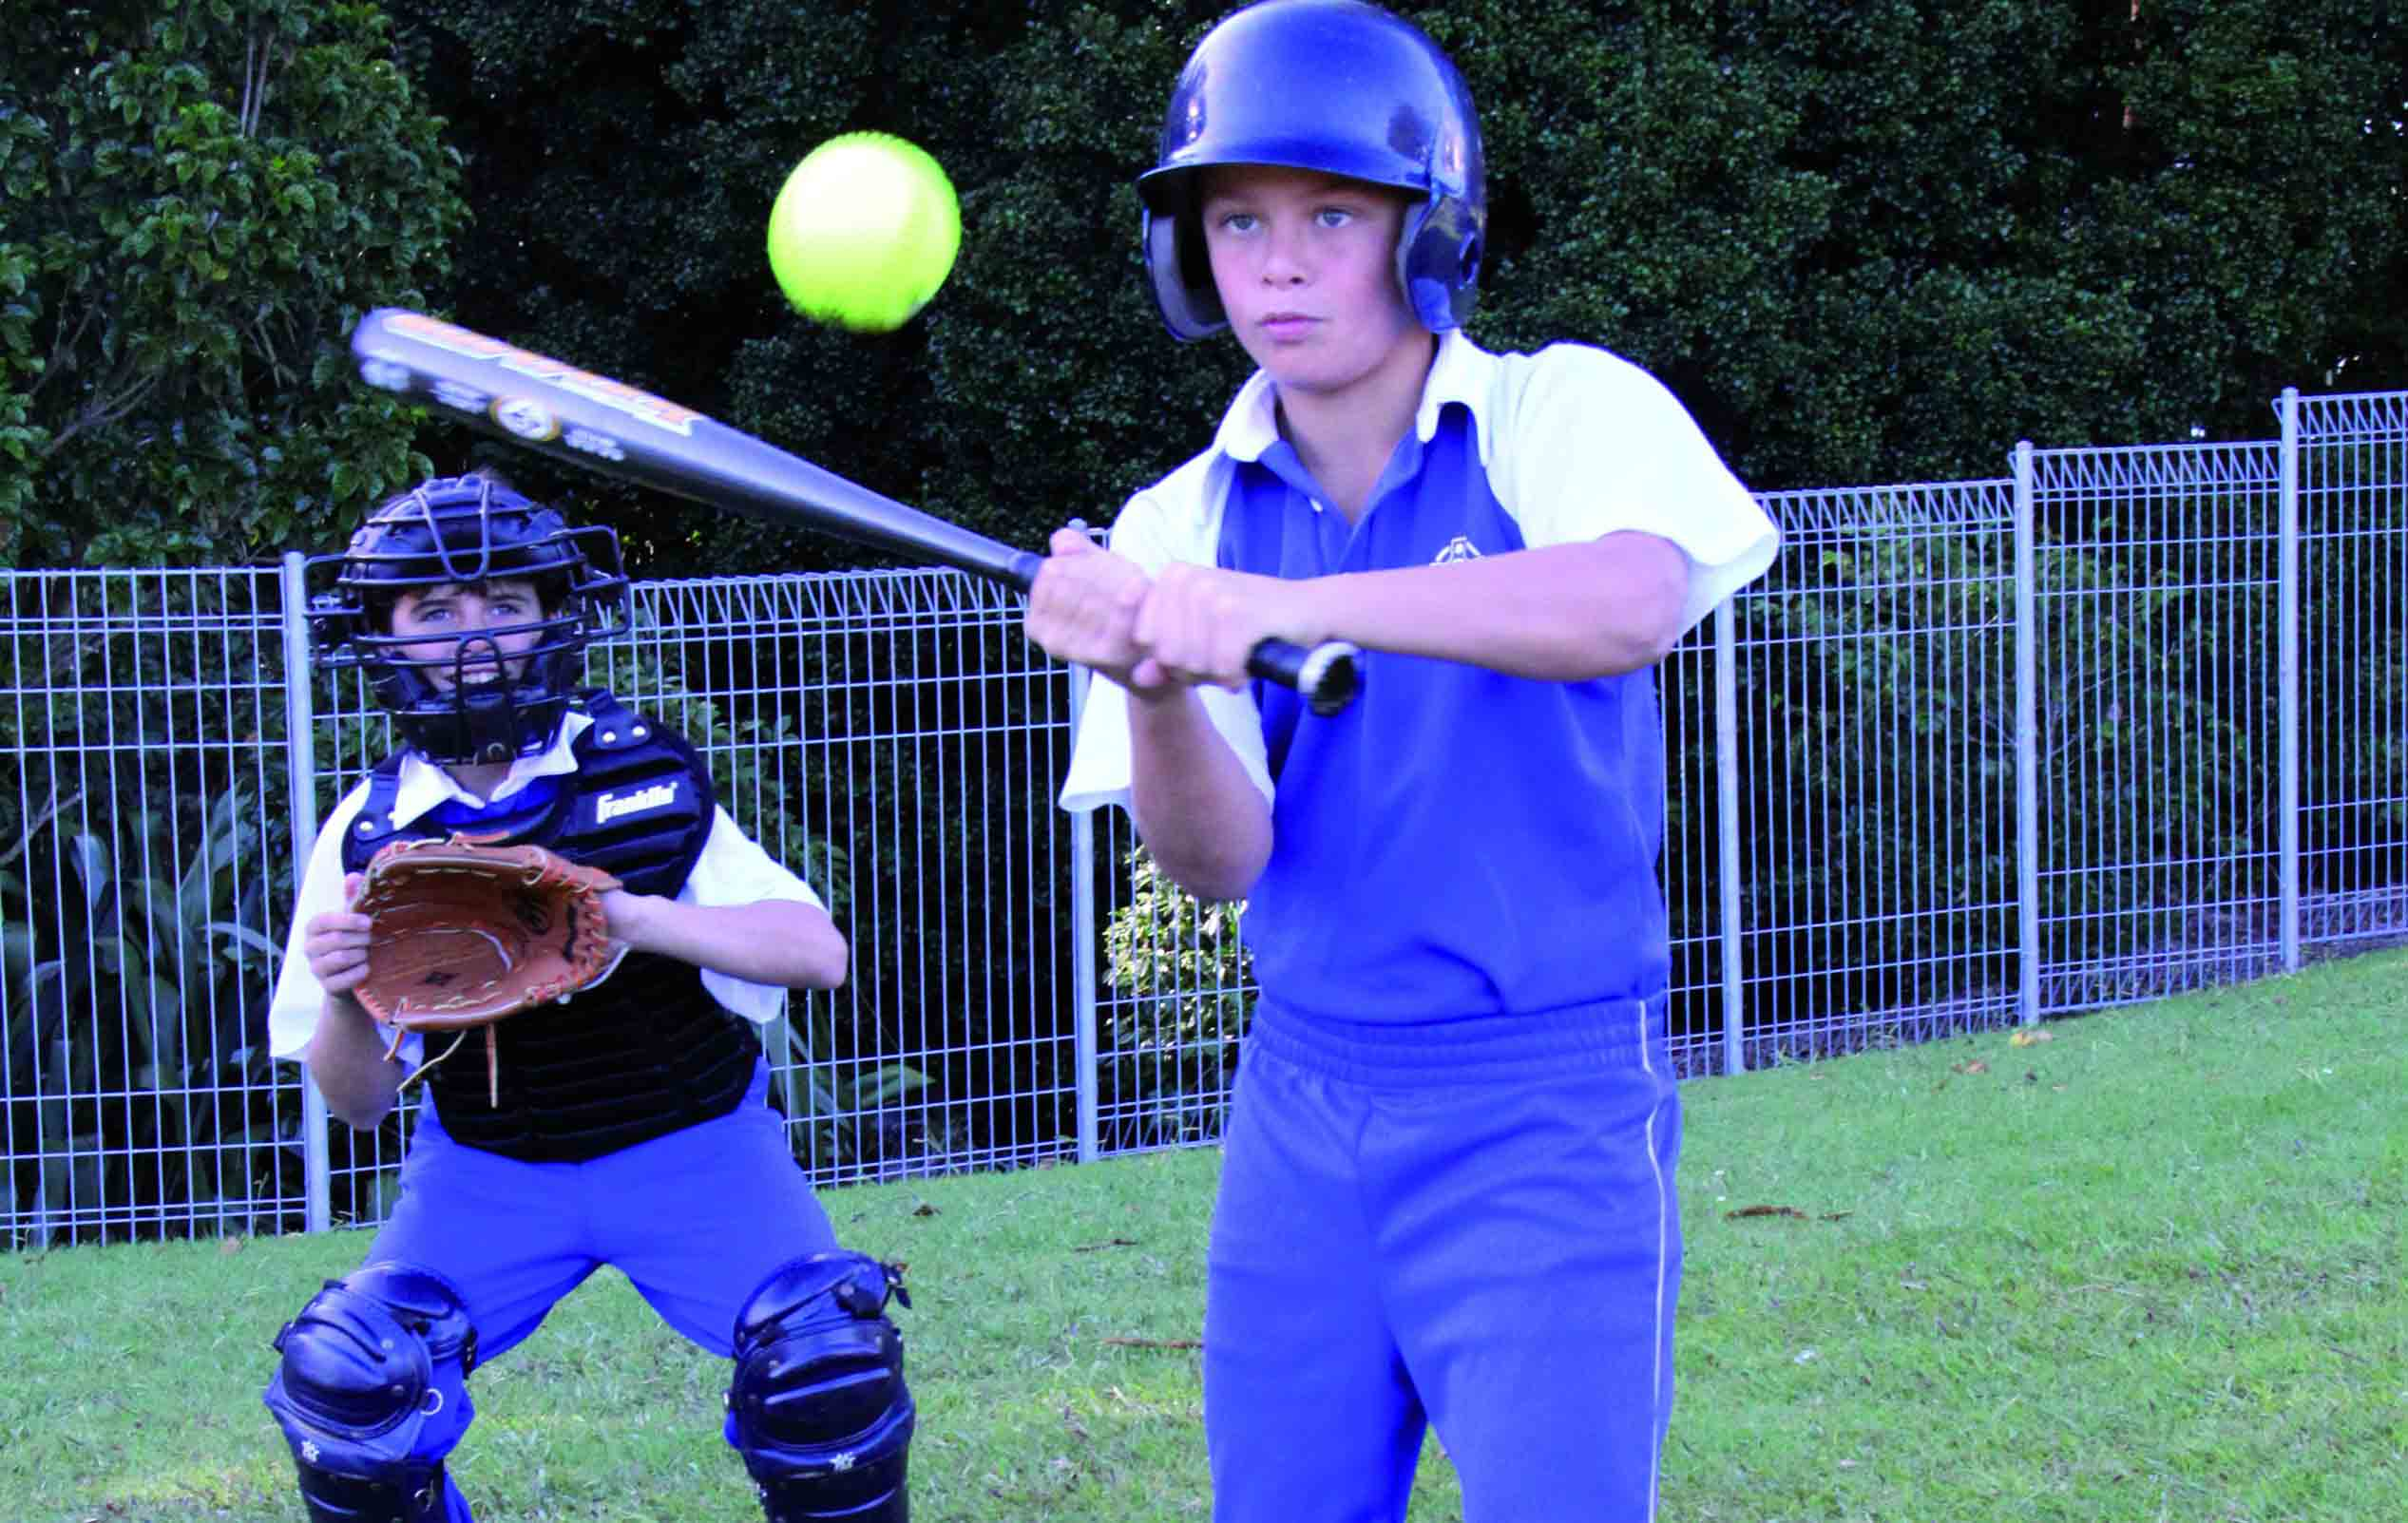 Saint-Kentigern-Boys'-School-Sports-Softball.jpg